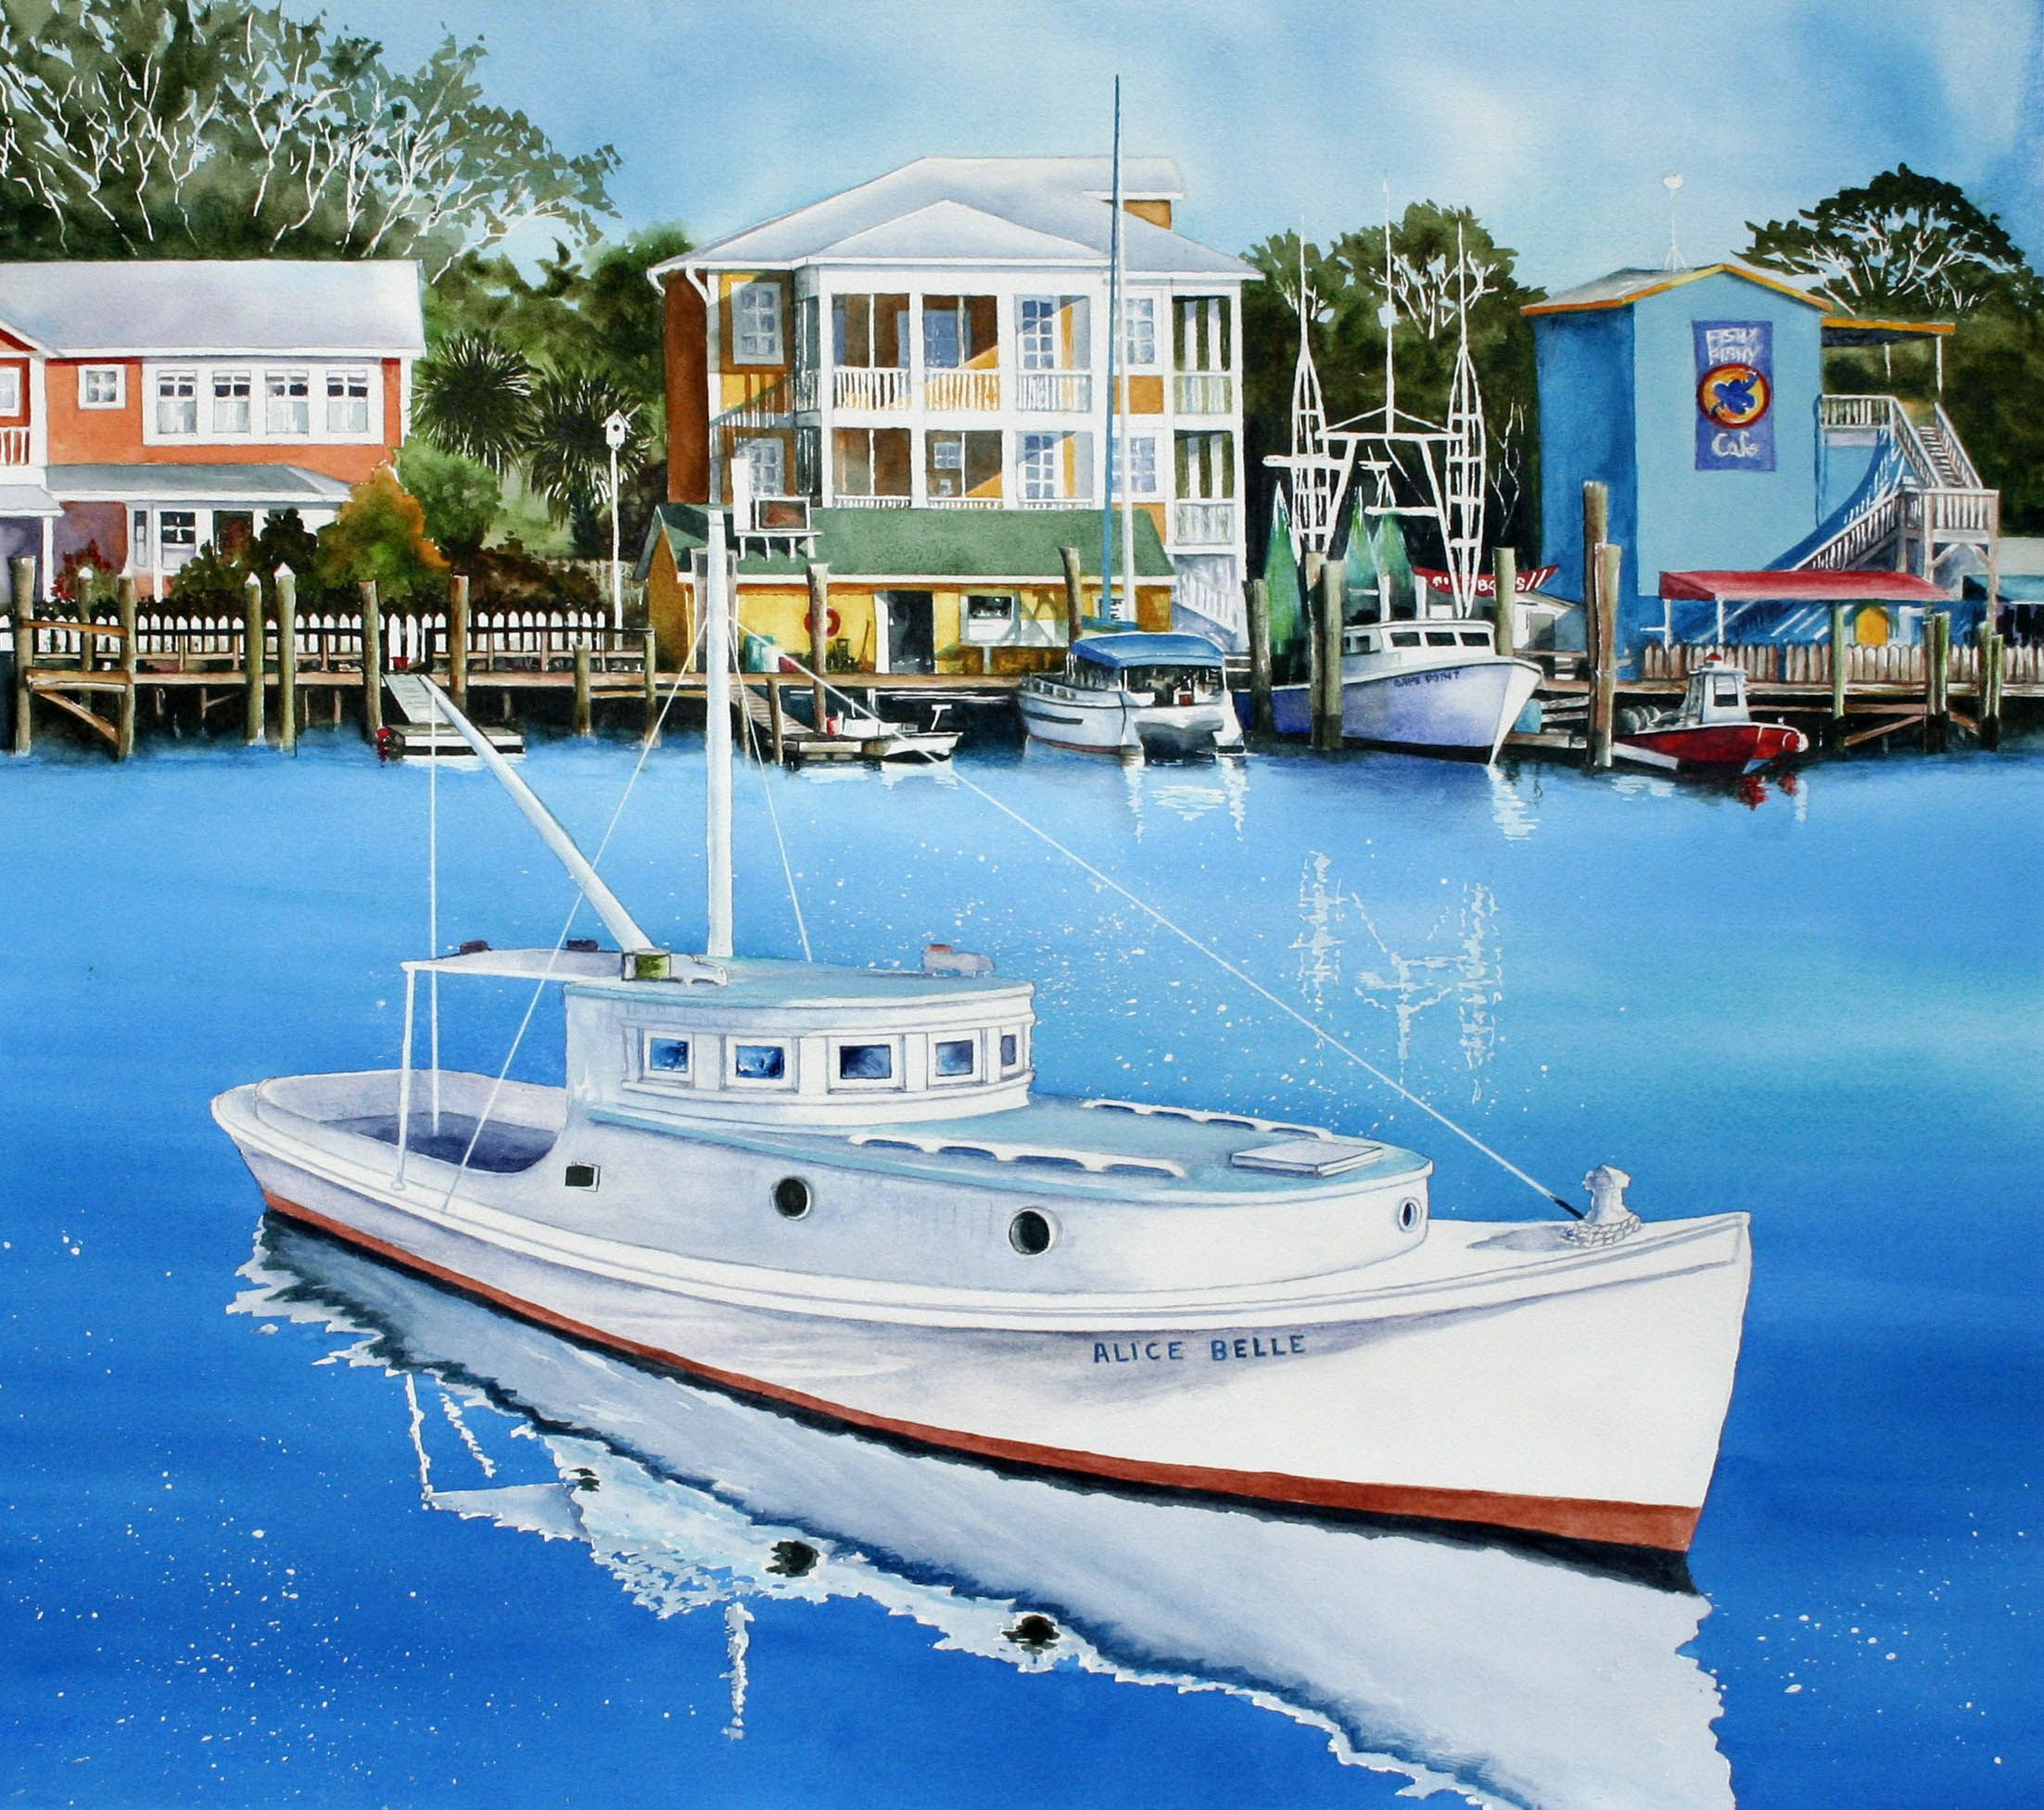 This watercolor painting by Larry Schafer is of the Alice Belle, an antique shrimp and fishing boat which worked out of the Yacht Basin in Southport, NC. See larryschaferart.blogsdpot.com.